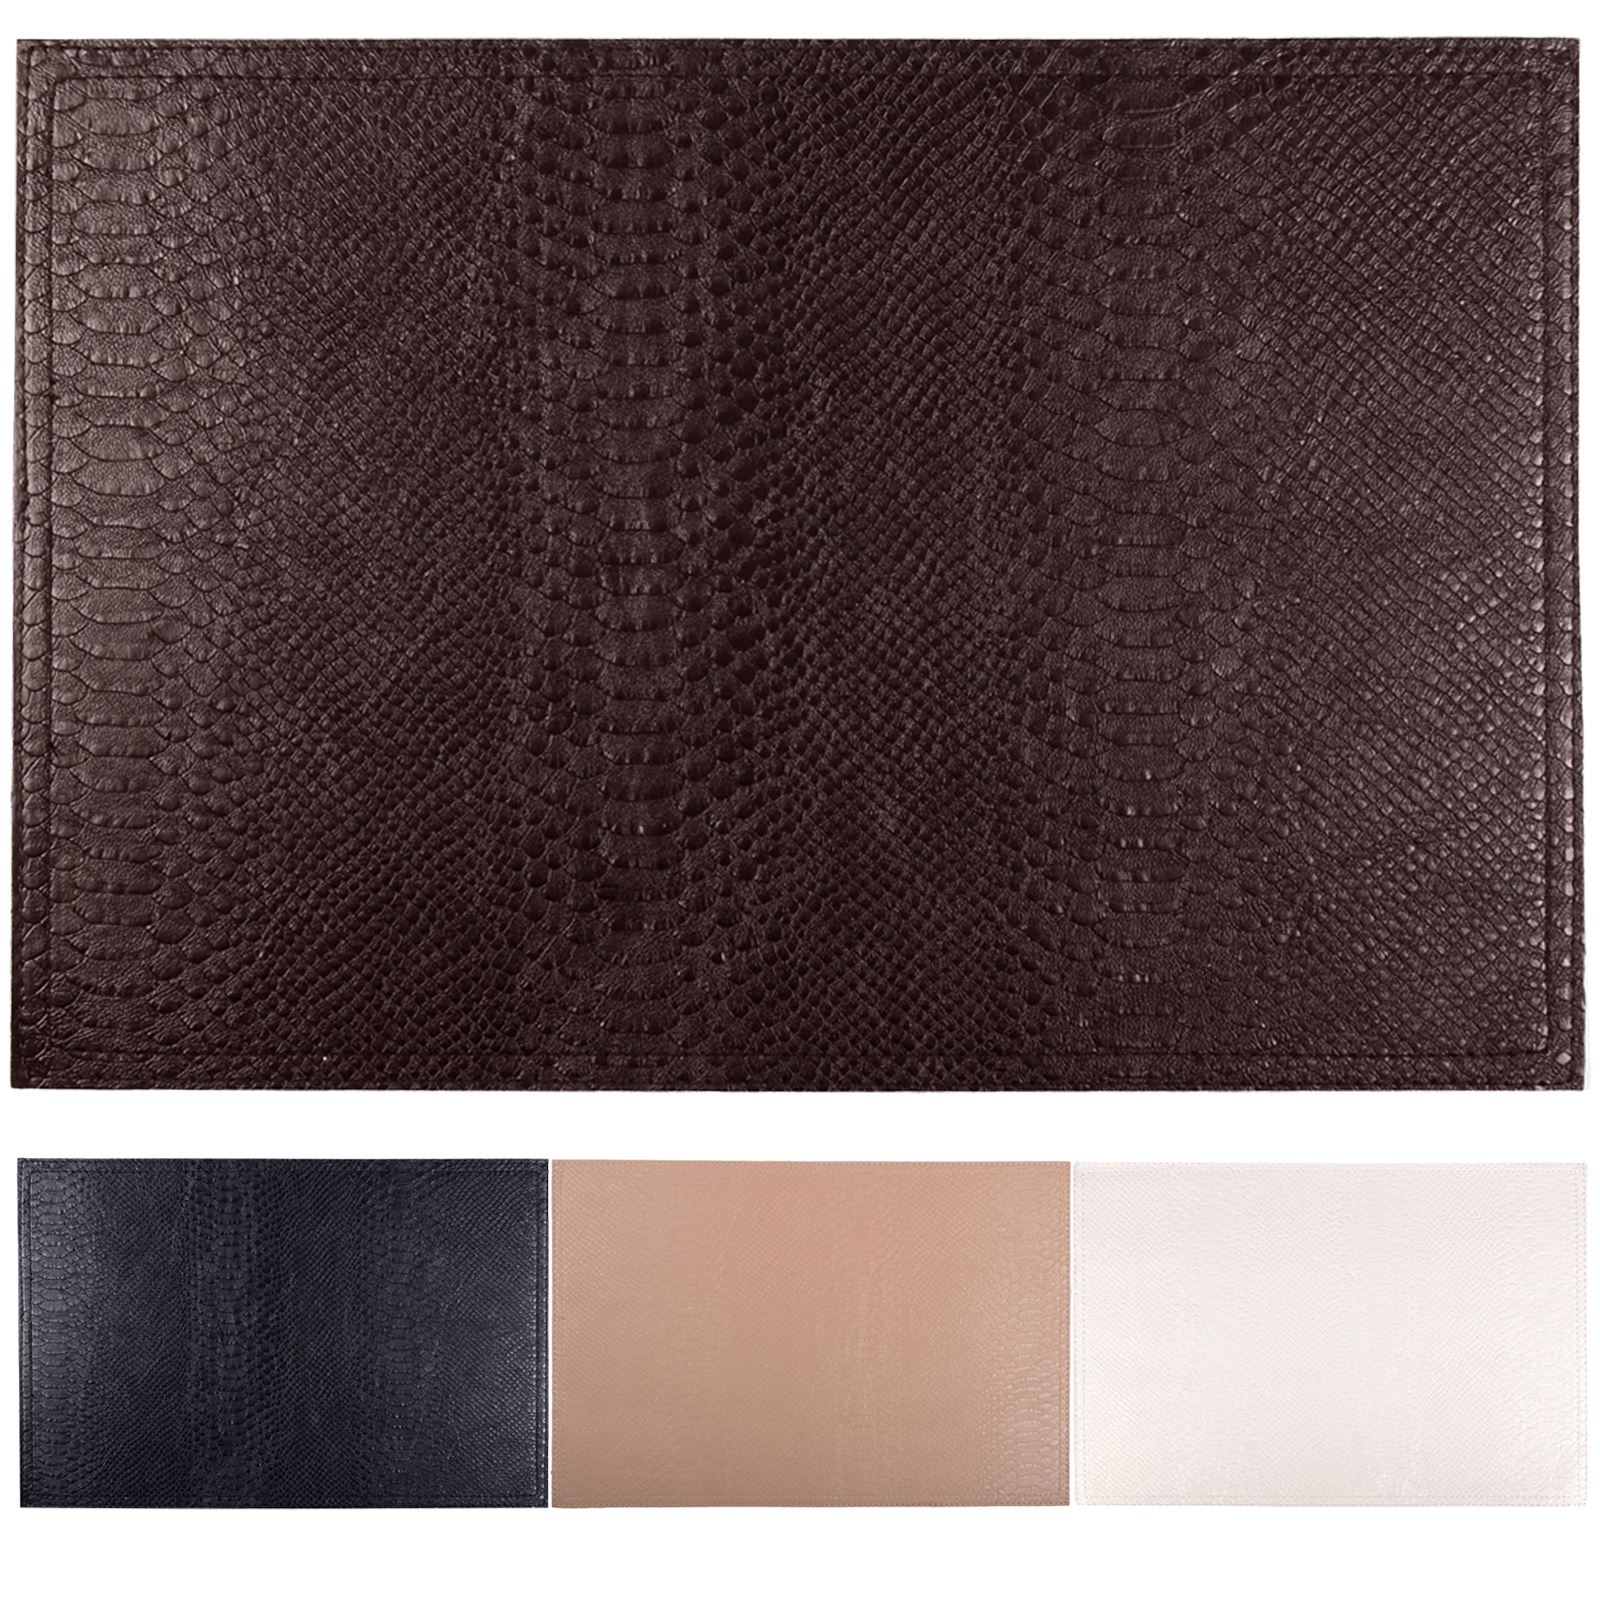 Set Of 4 Faux Leather Placemats Coasters Dining Table